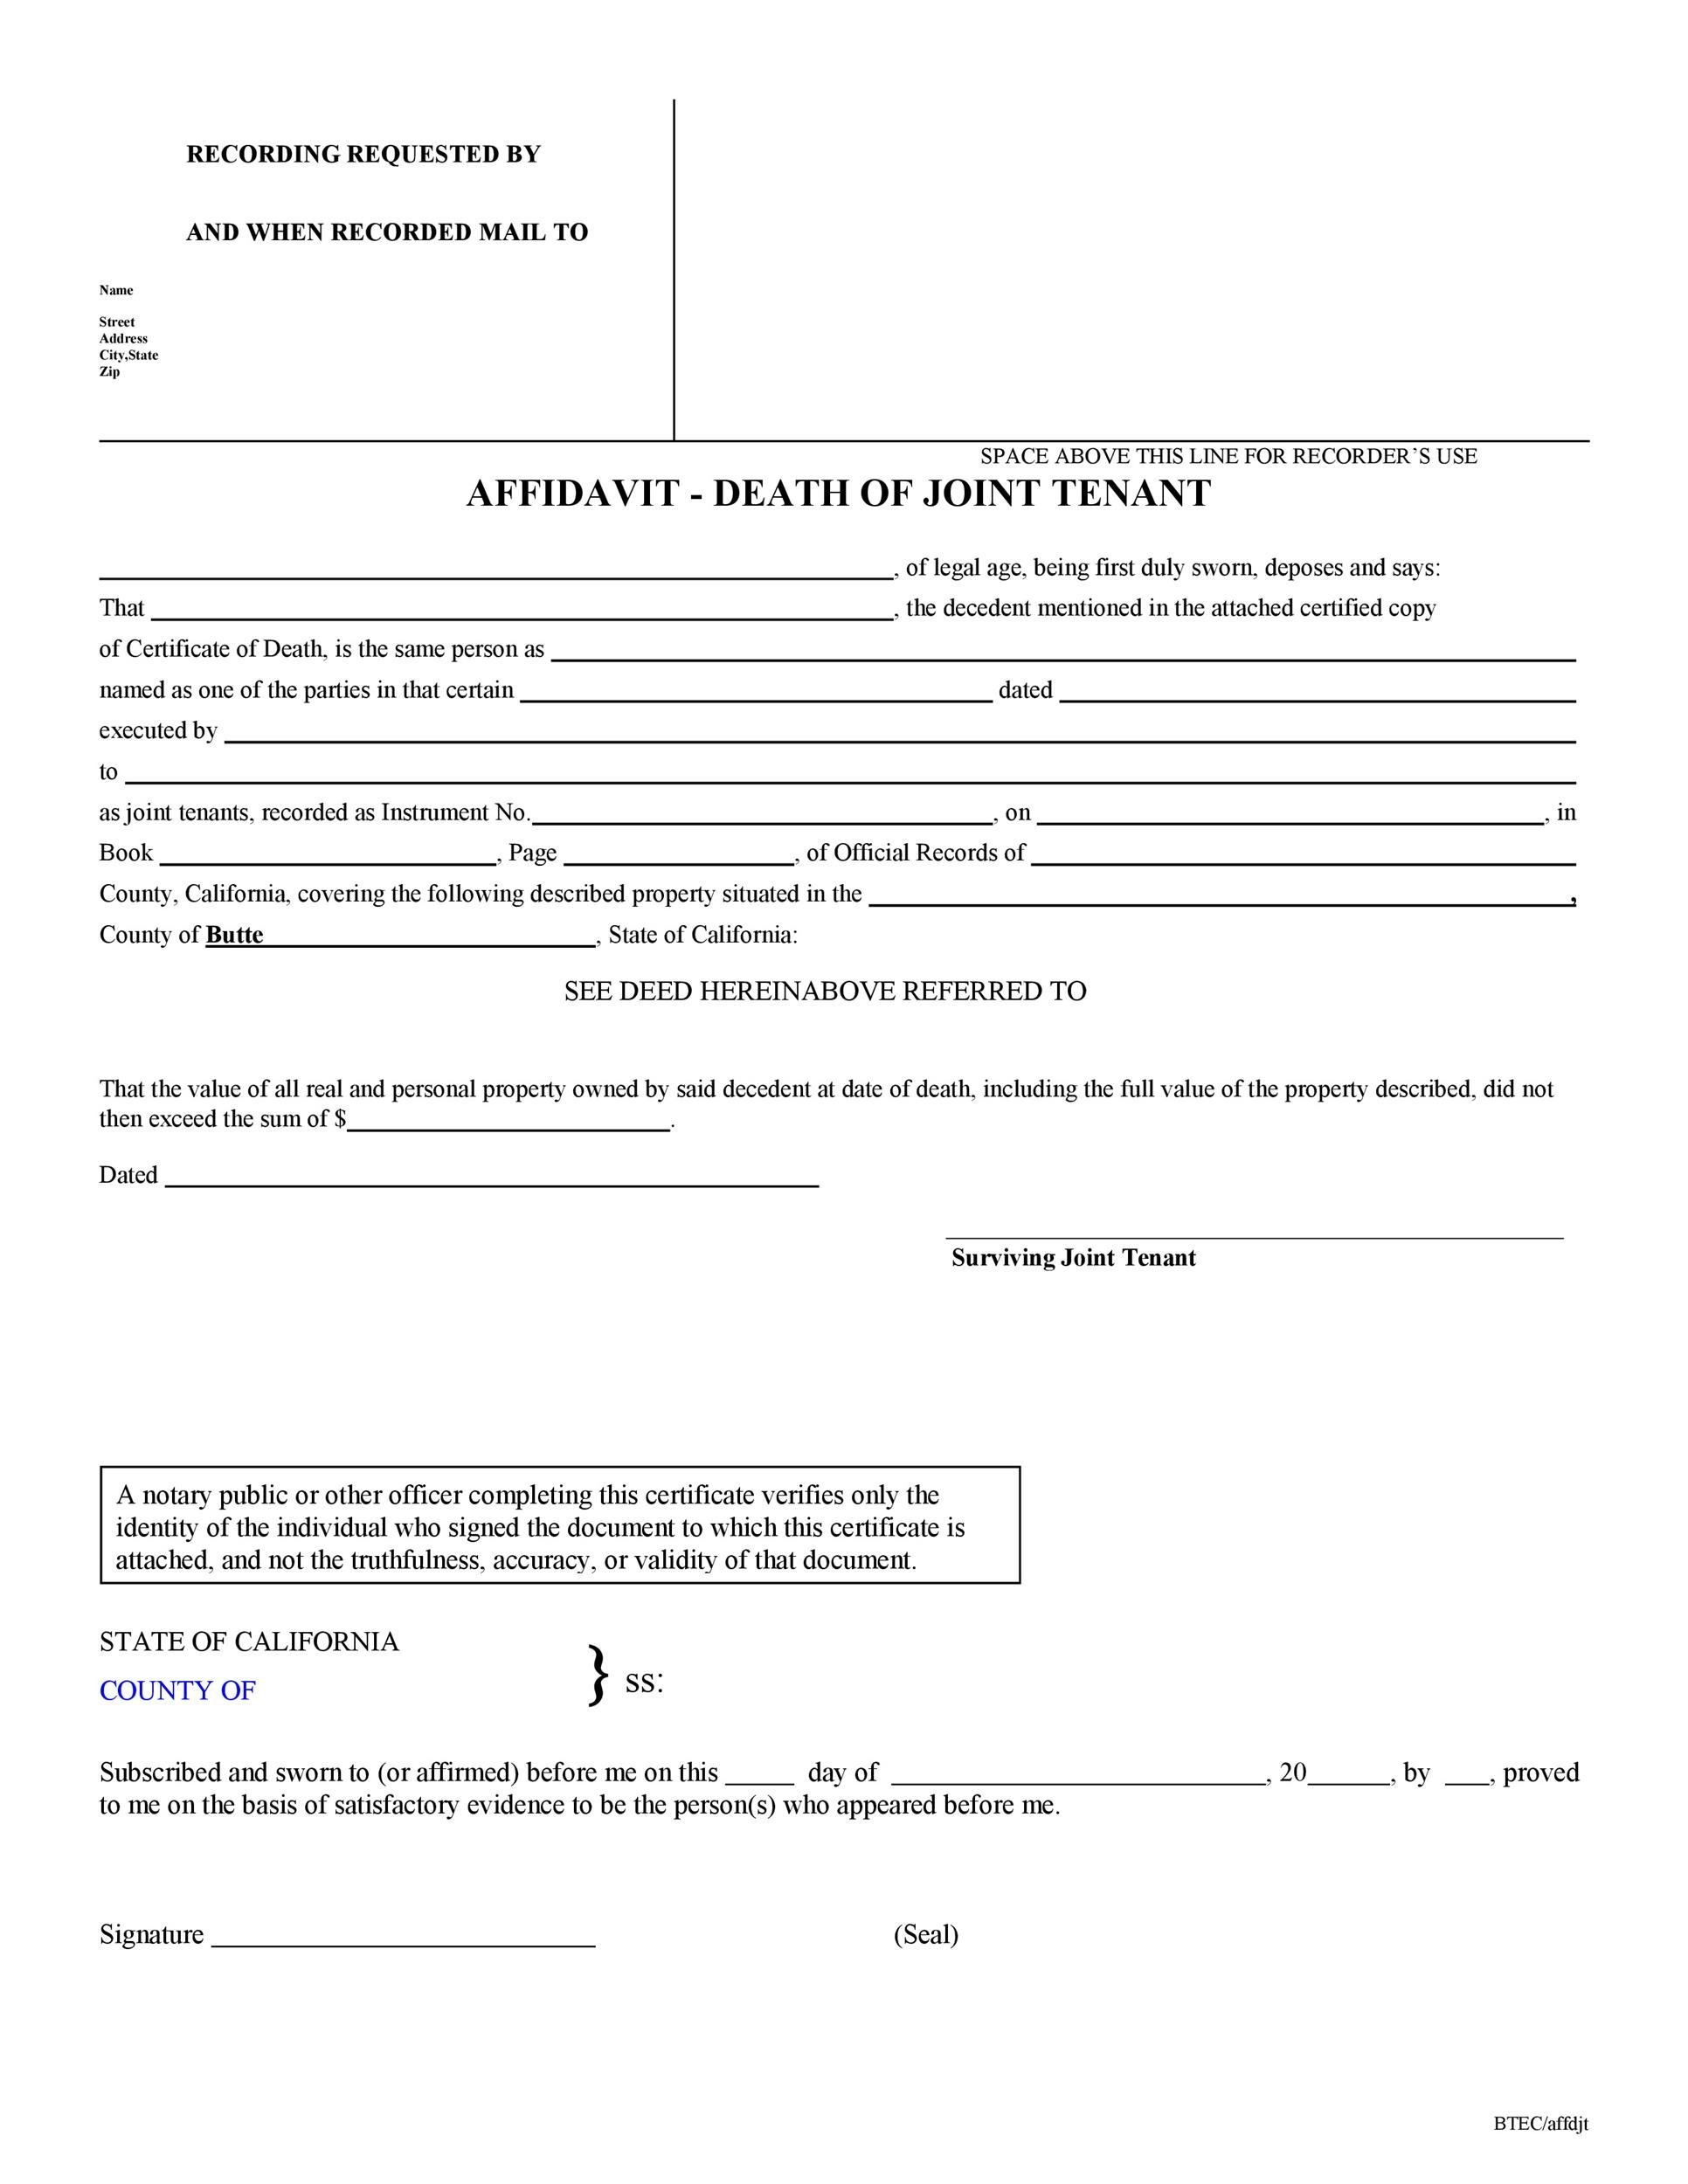 Free affidavit of death 10